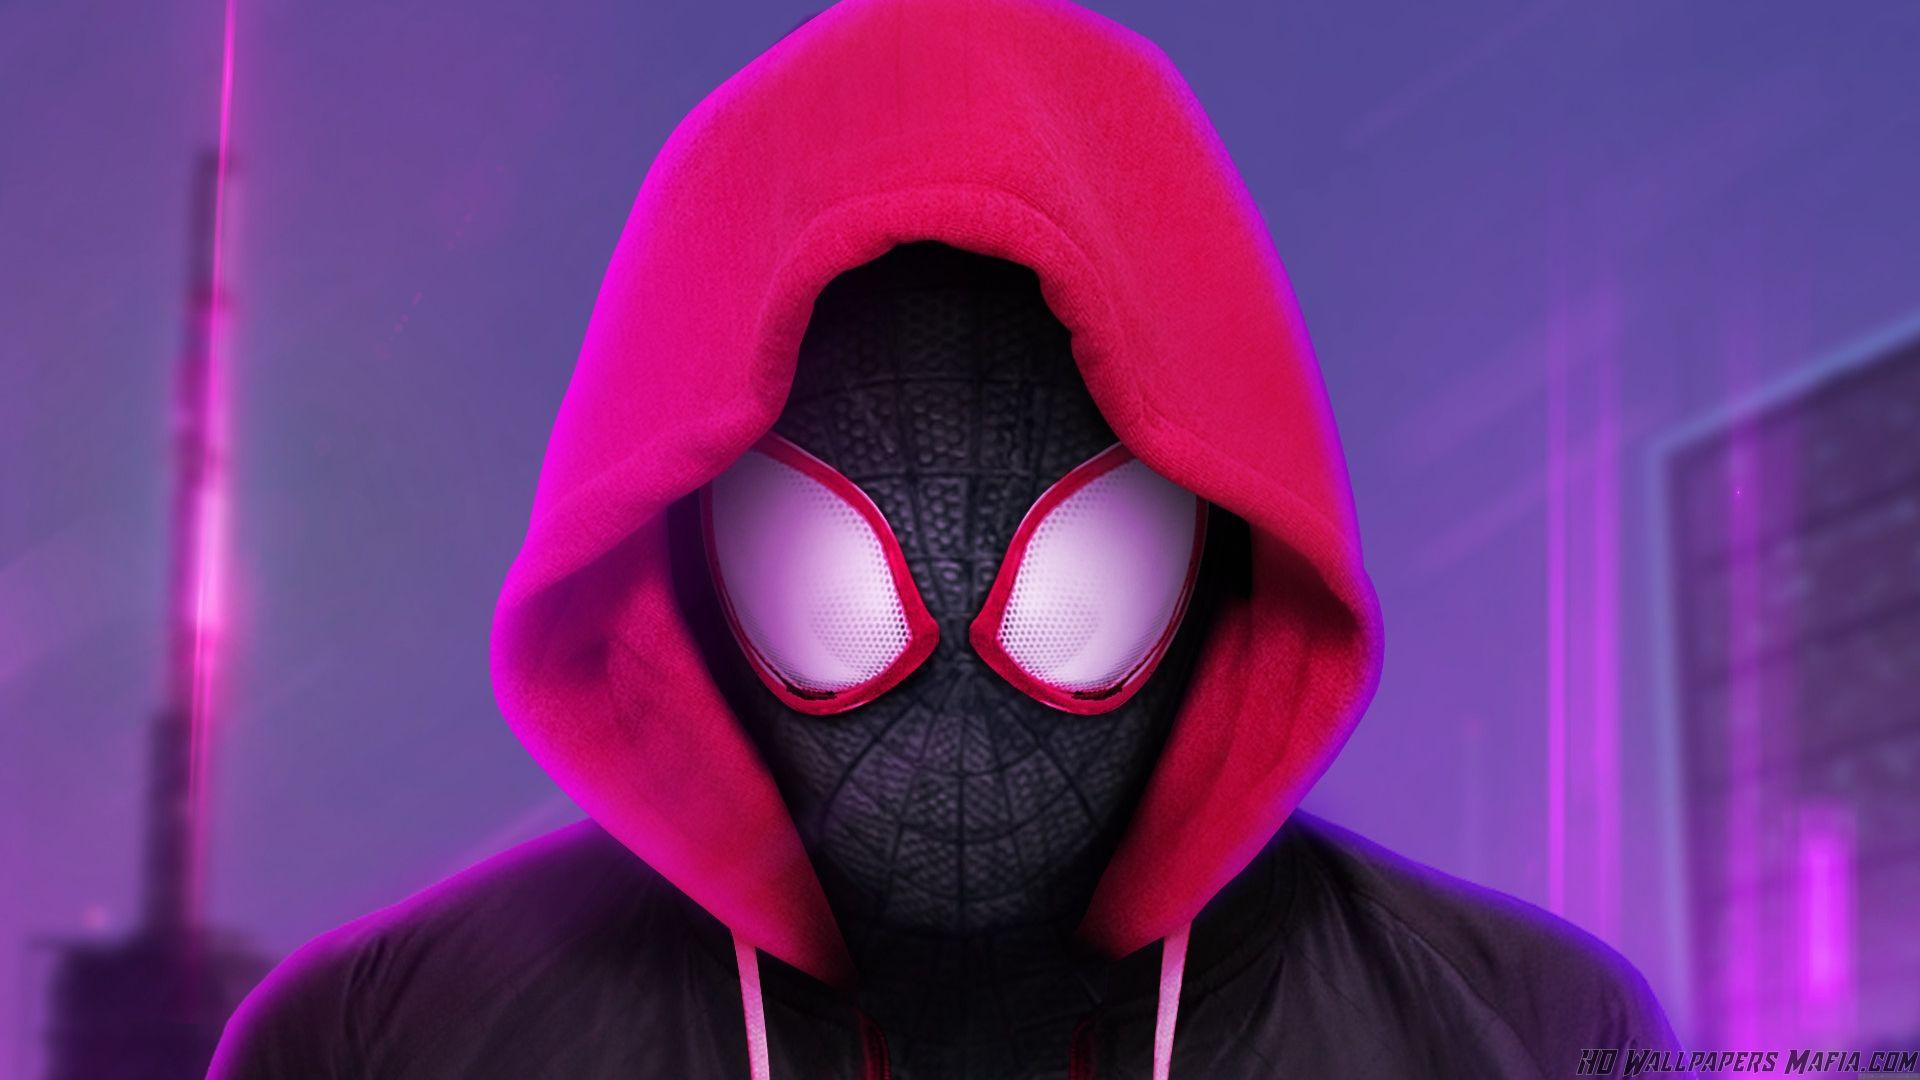 Miles Morales Spider Man Into the Spider Verse Wallpapers